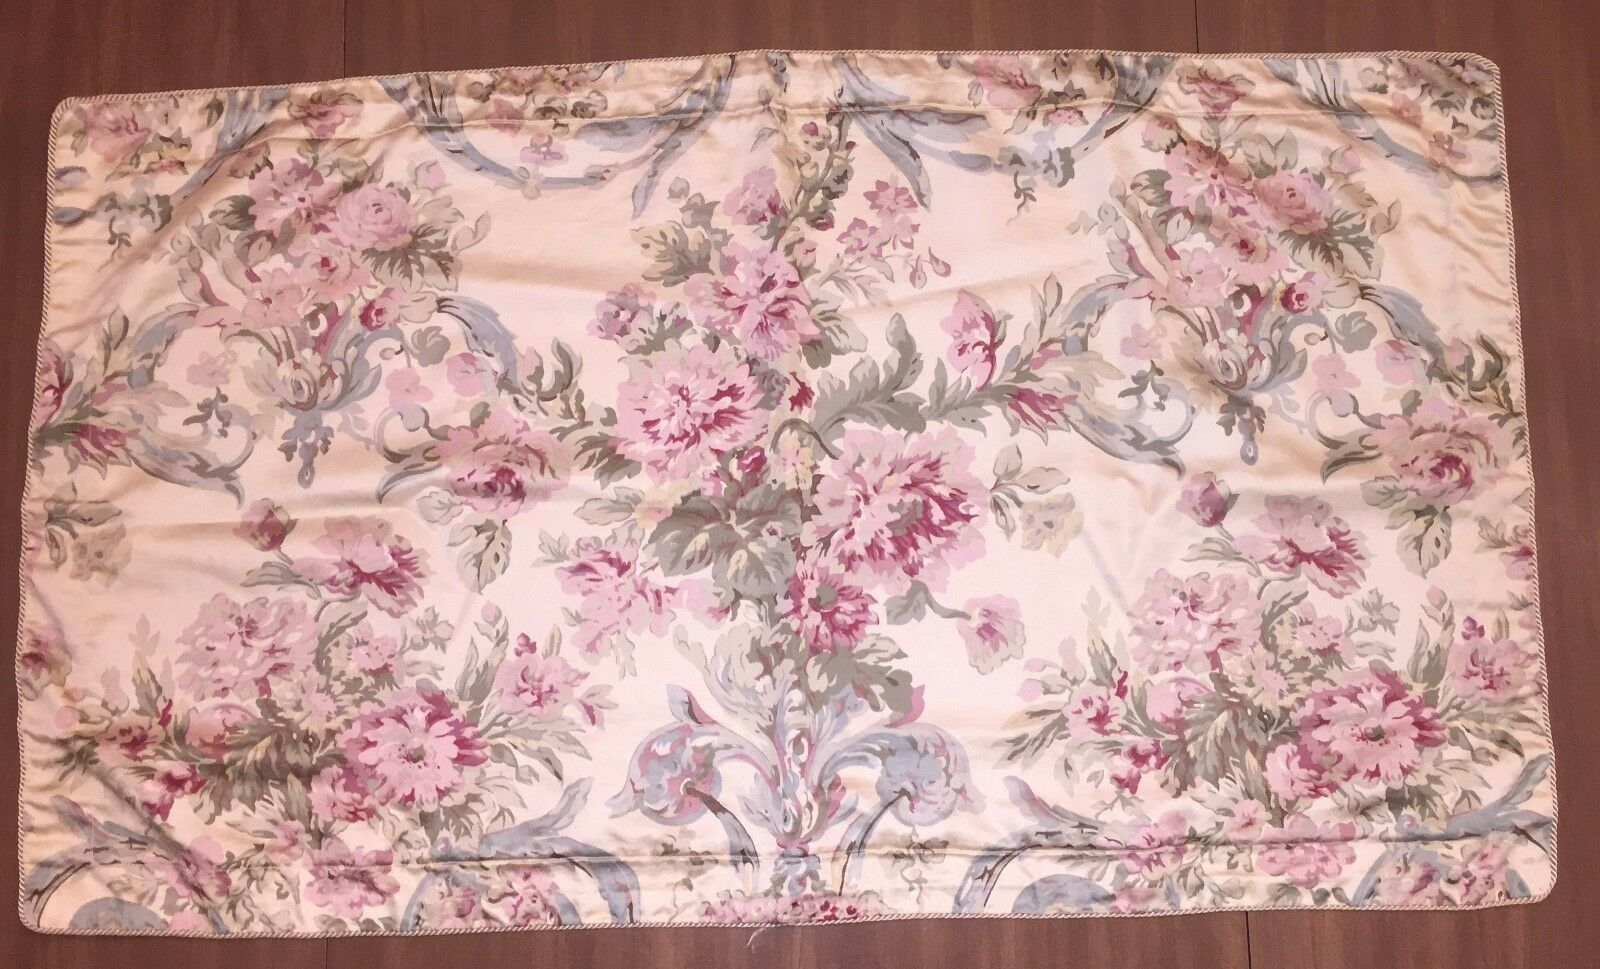 2 CHAPS by RALPH LAUREN WESTBURY King Size Pillow Shams 39x22 Floral gold bluee